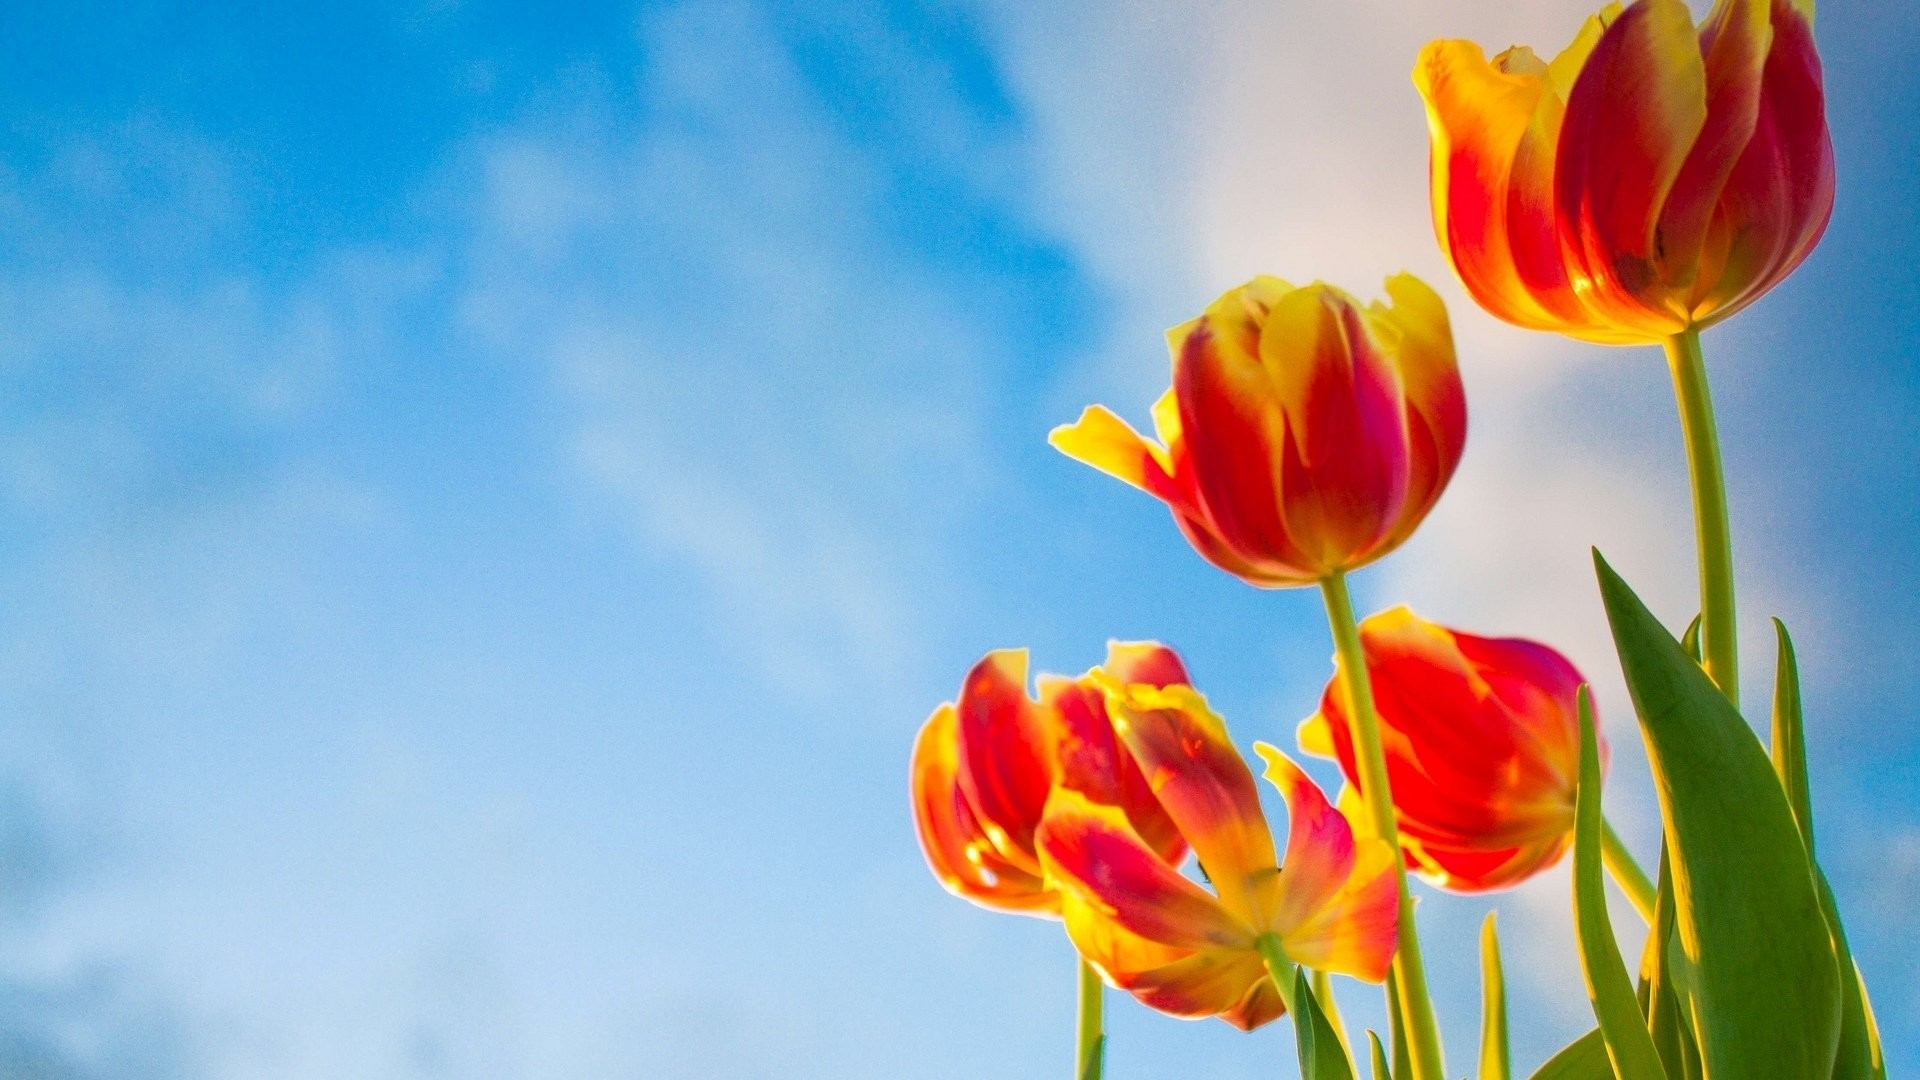 1920x1080 flower flowers flowers tulips sky background wallpaper widescreen full  screen widescreen hd wallpapers background wallpaper widescreen